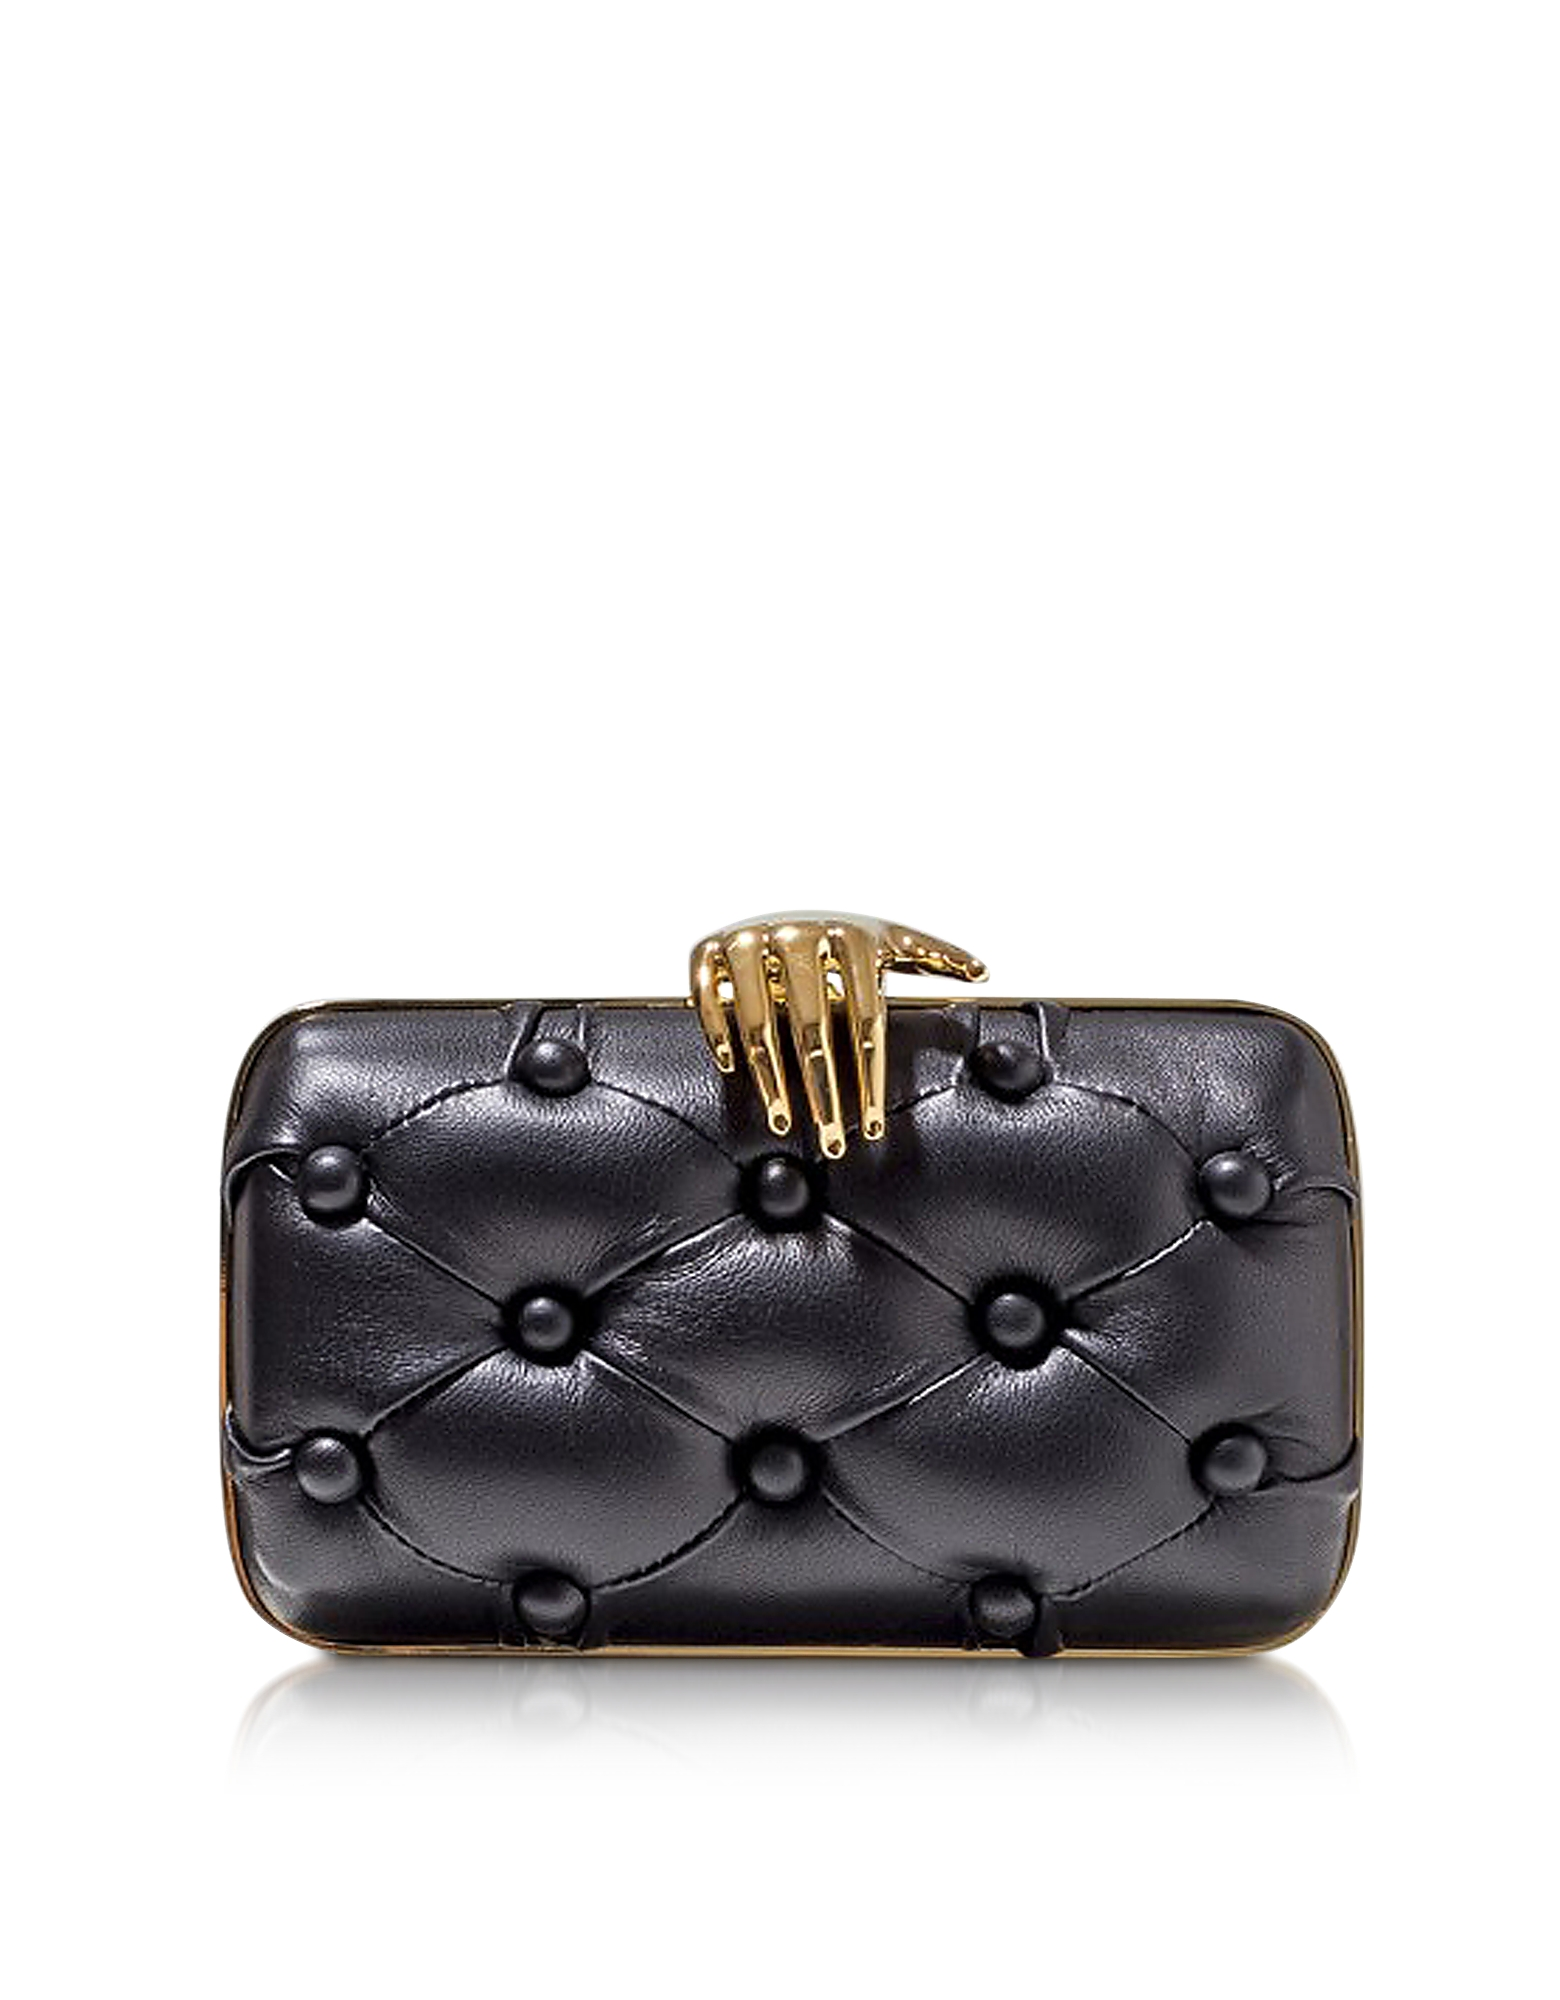 Benedetta Bruzziches BLACK LEATHER CARMEN WITH HAND CLUTCH